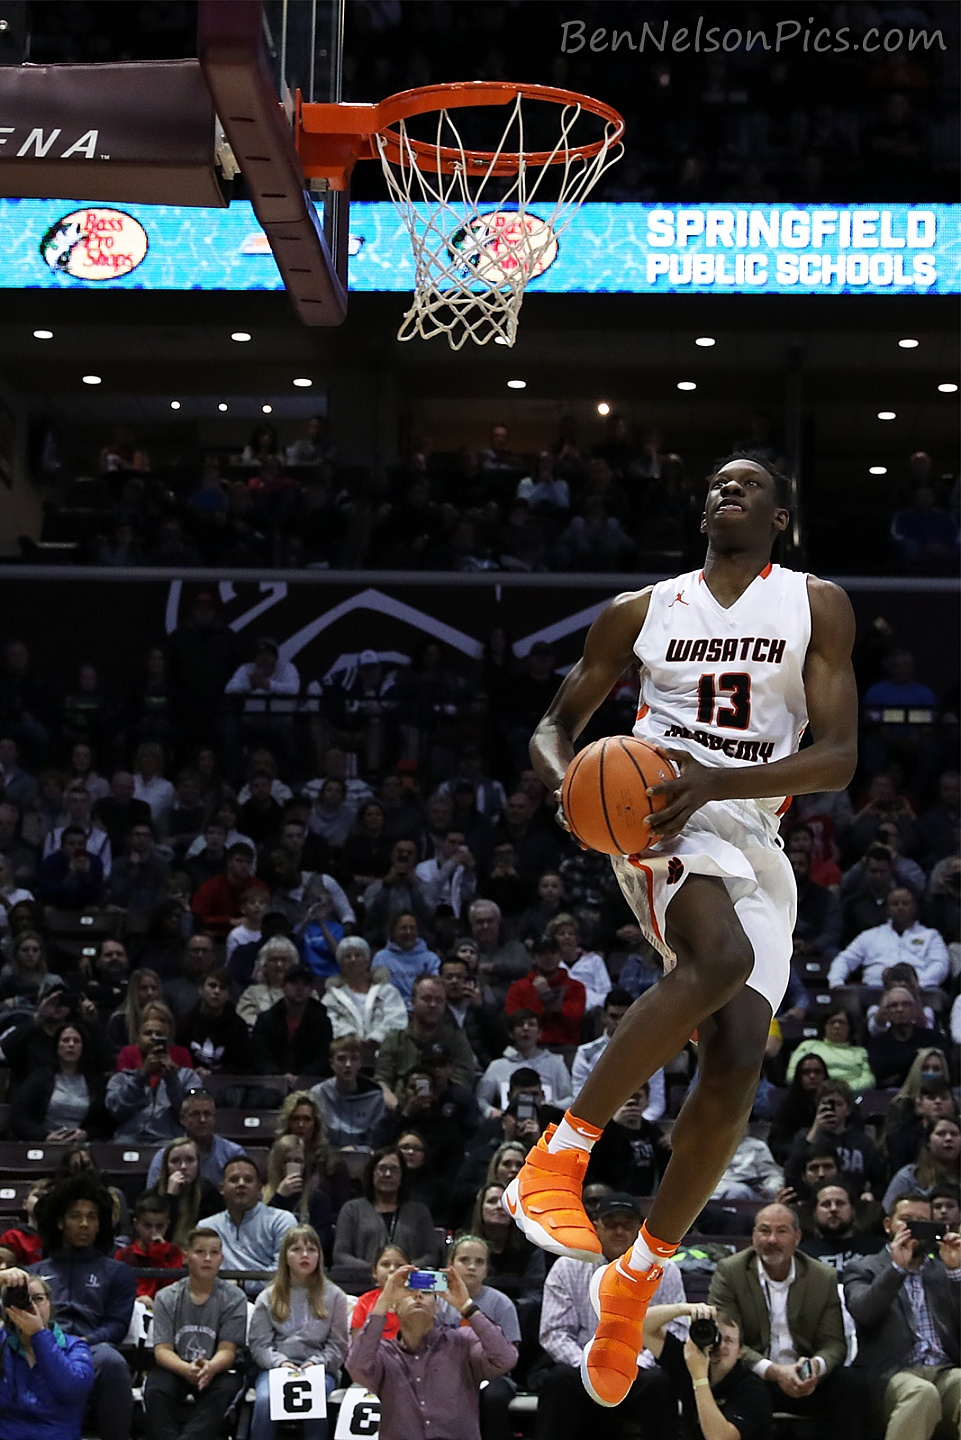 Bass Pro Shops Tournament of Champions 2018 - Wasatch Academy player Tyrese Samuel takes air before a dunk during the 2018 TofC dunk contest.